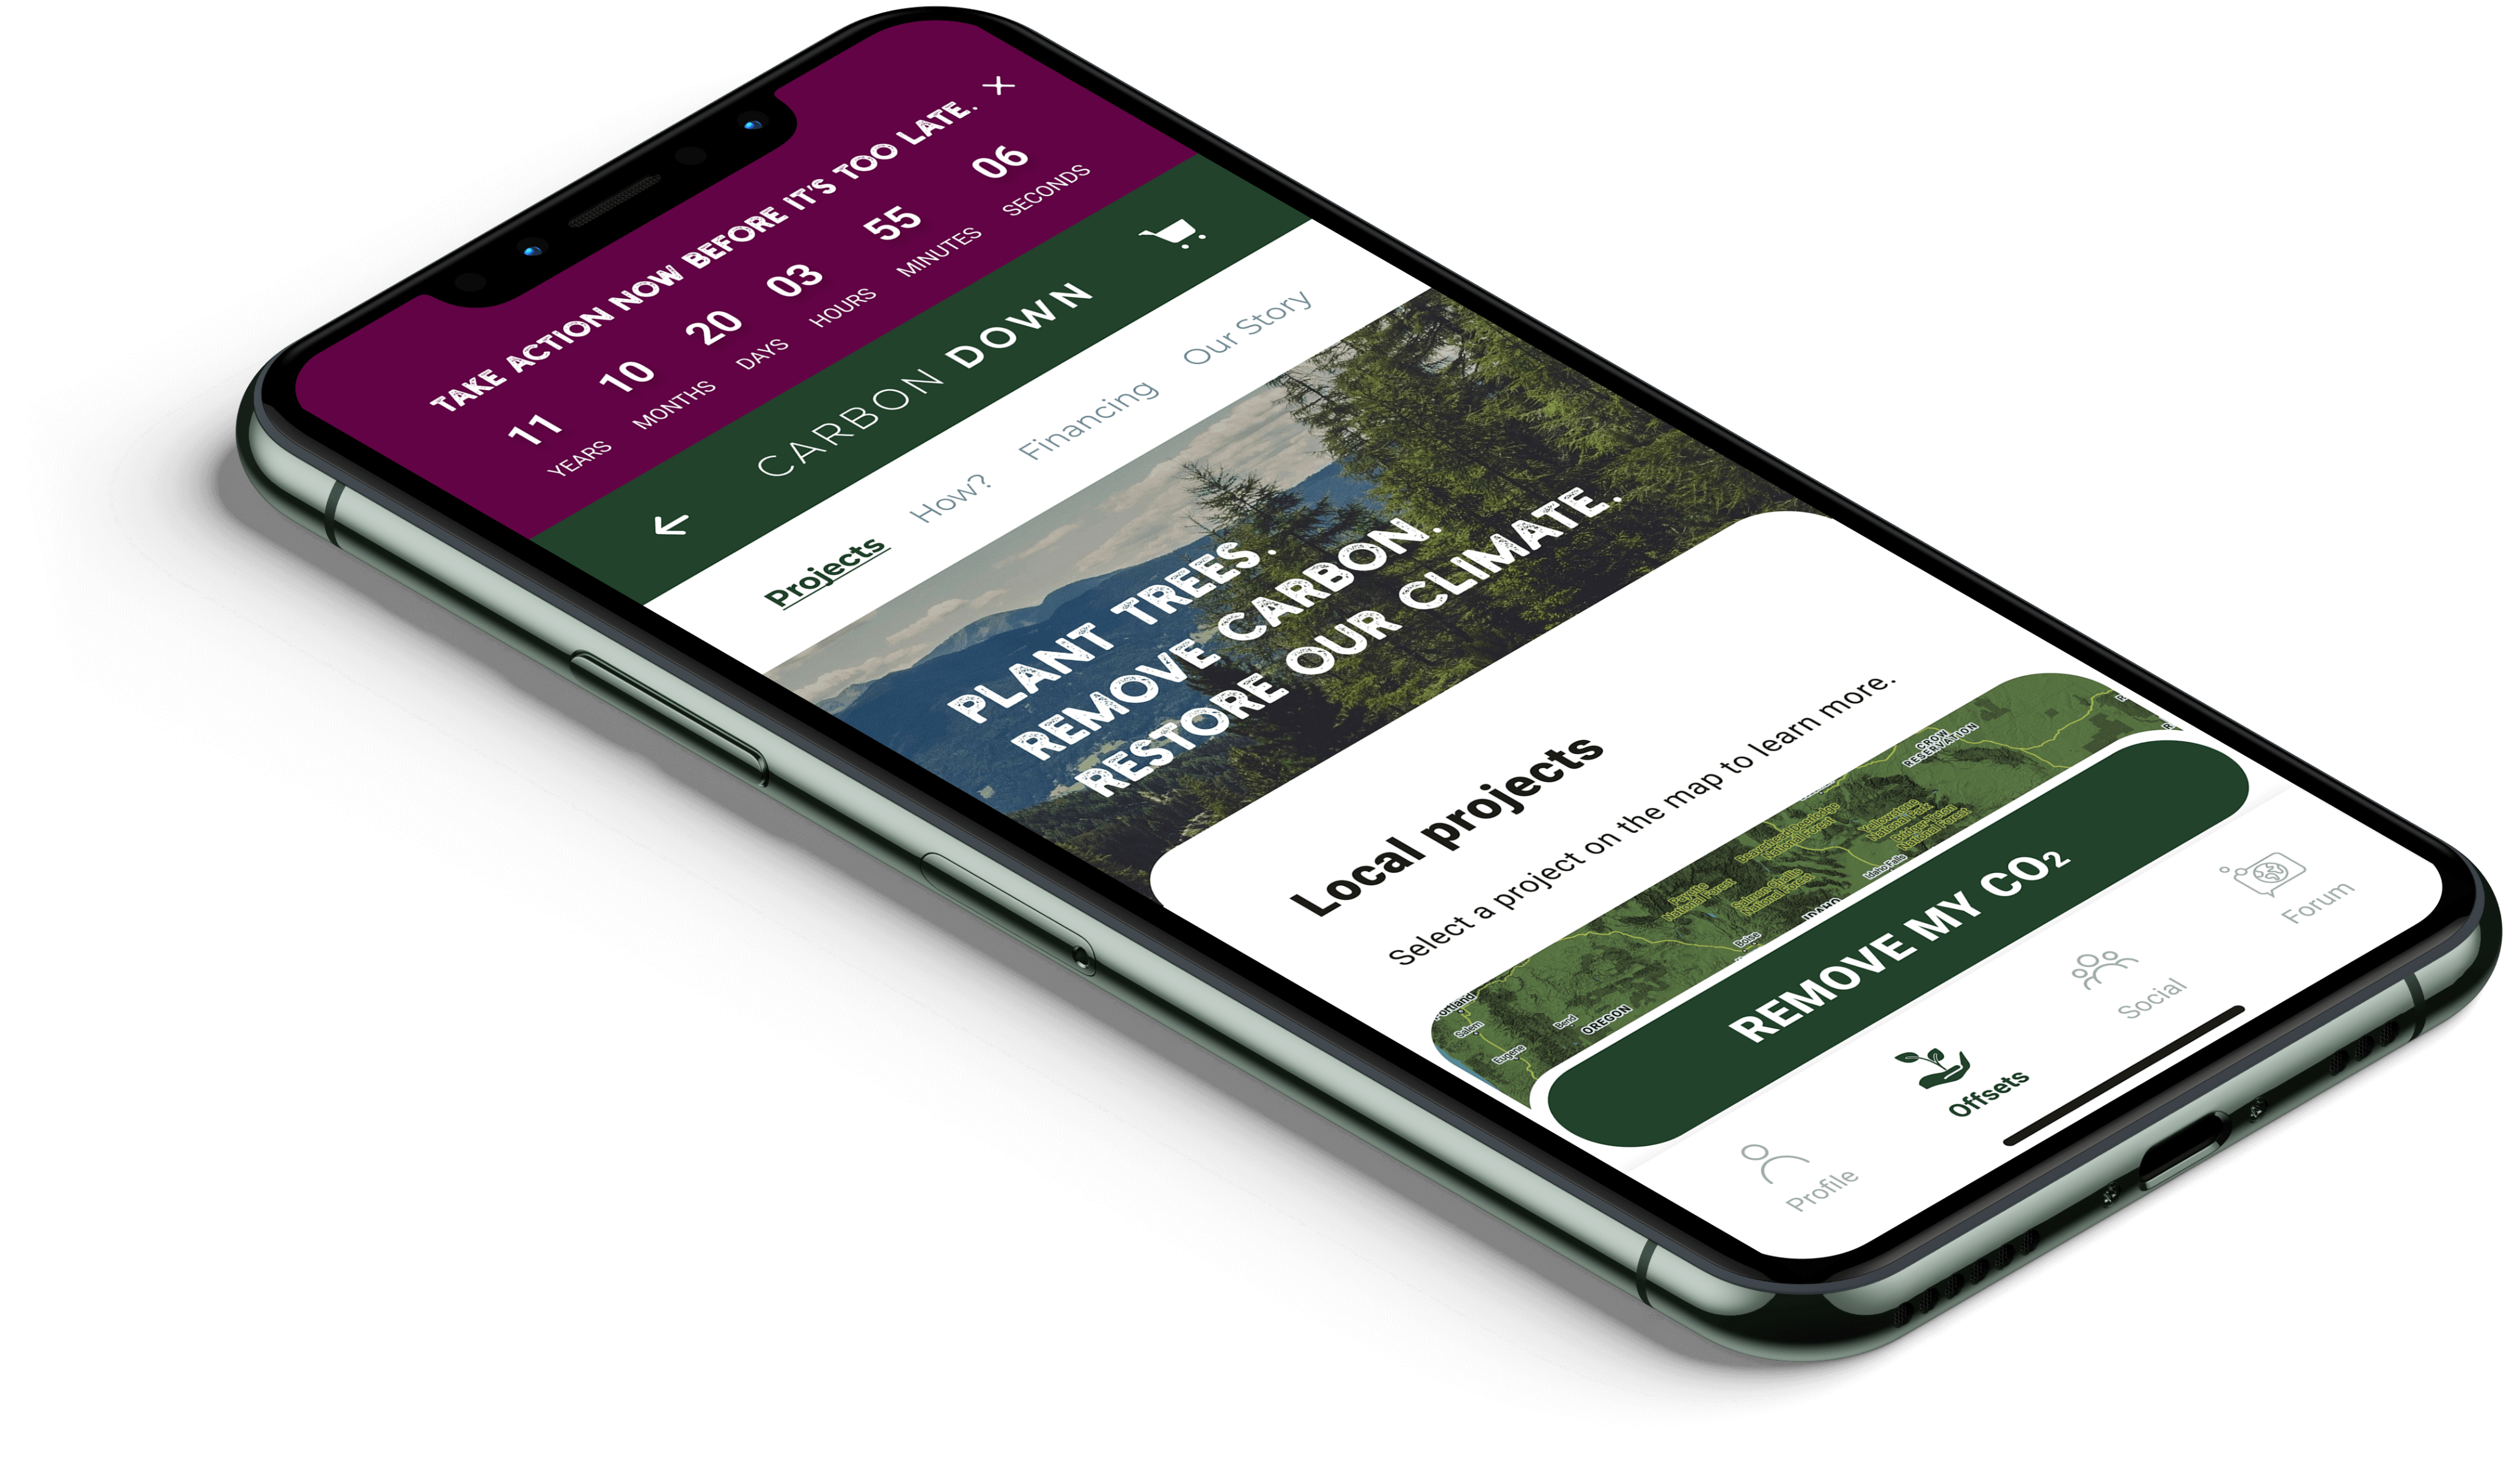 Carbon offset marketplace with countdown timer